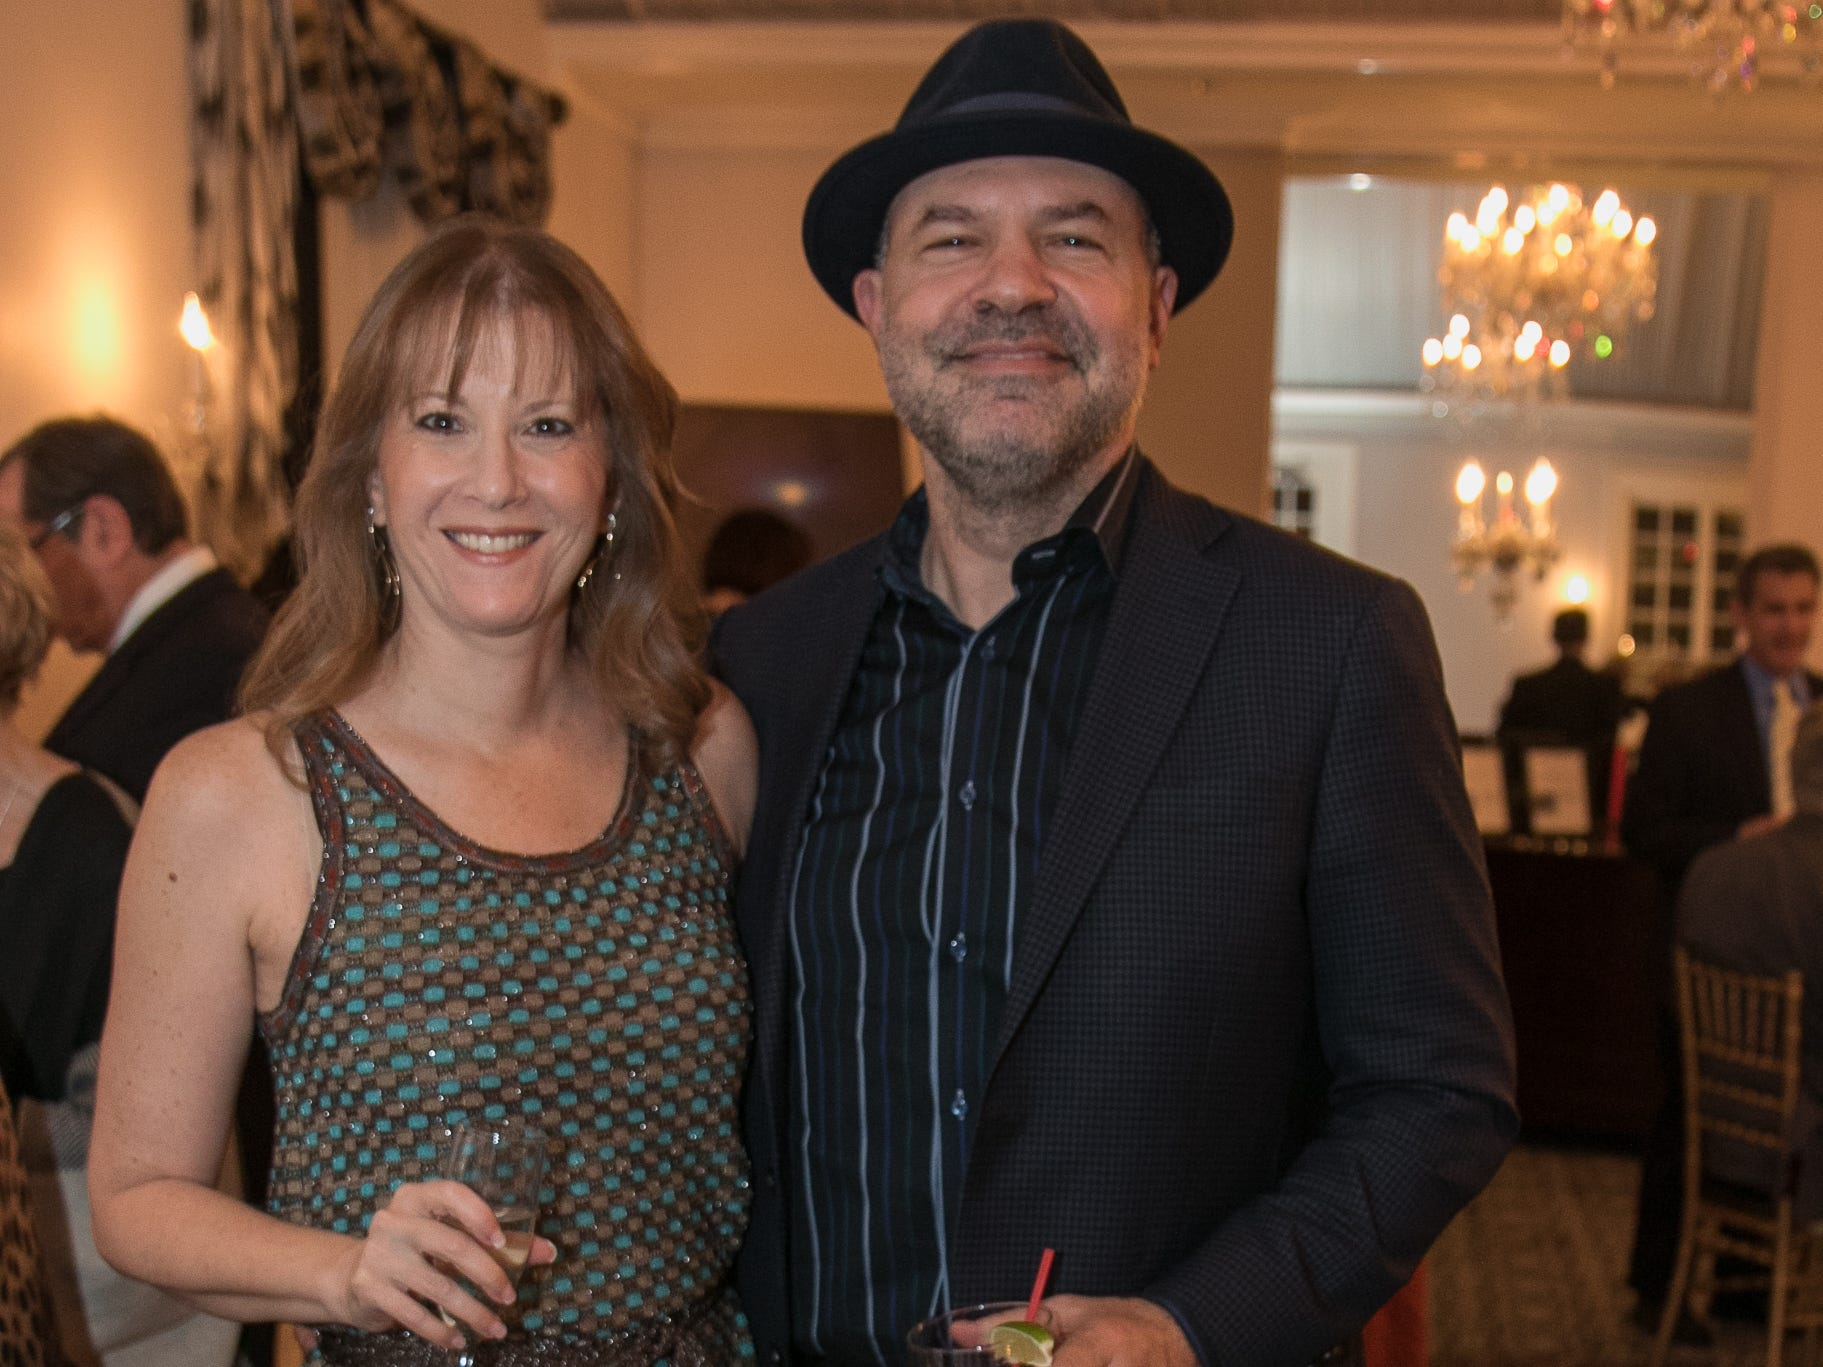 Robin and David Dubin. The Bergen Volunteer Center celebrated its 10th anniversary of the Bergen LEADS program at The Hearts of Gold Dinner and Auction at the Stony Hill Inn in Hackensack. 11/08/2018